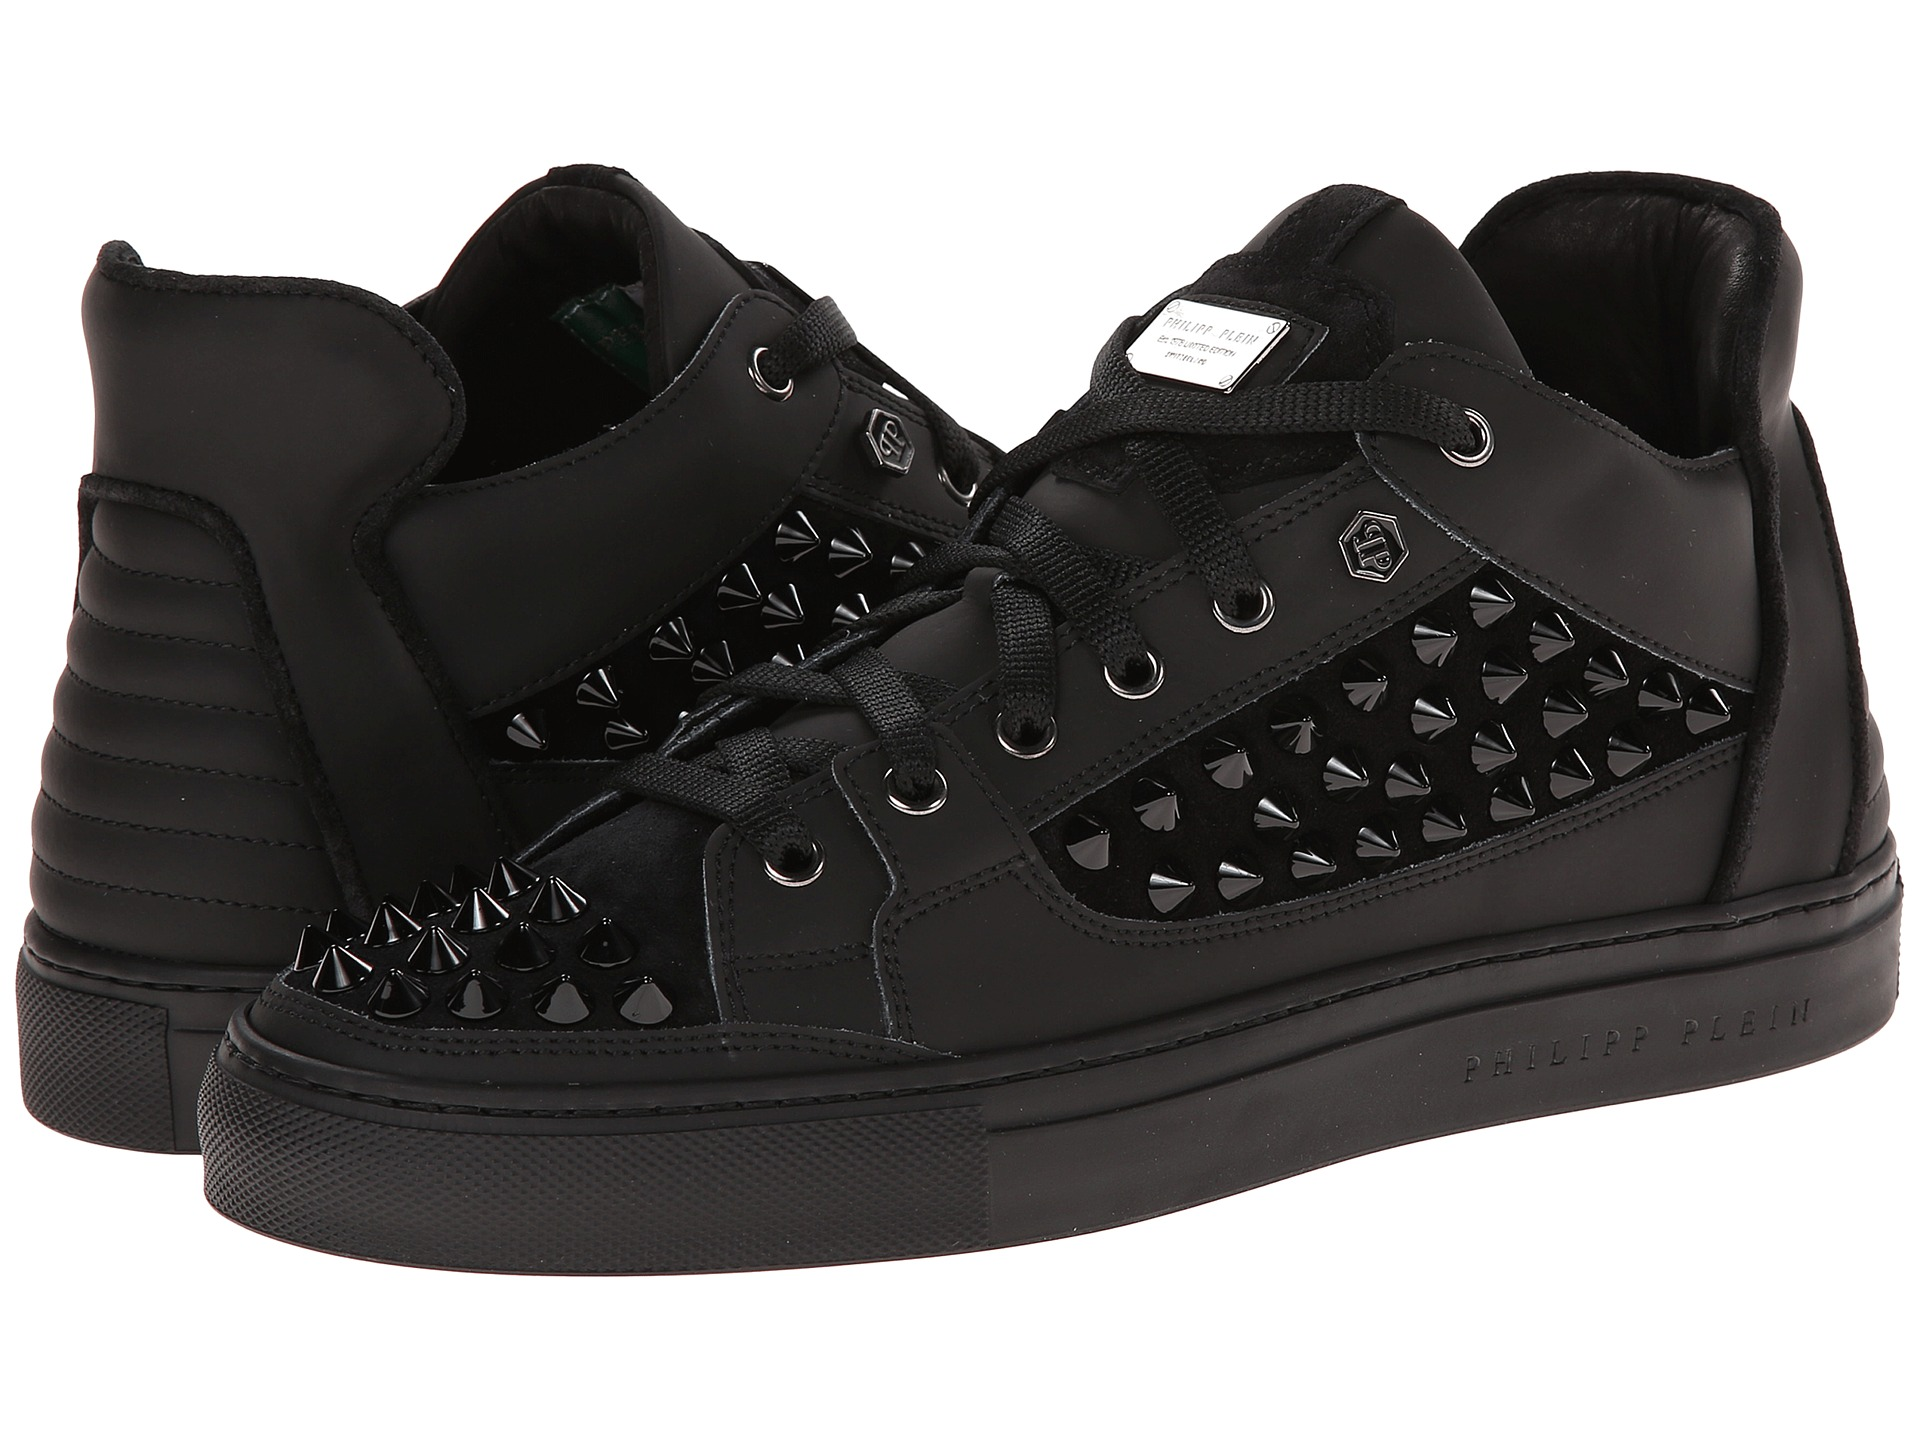 philipp plein peter sneakers shoes shipped free at zappos. Black Bedroom Furniture Sets. Home Design Ideas